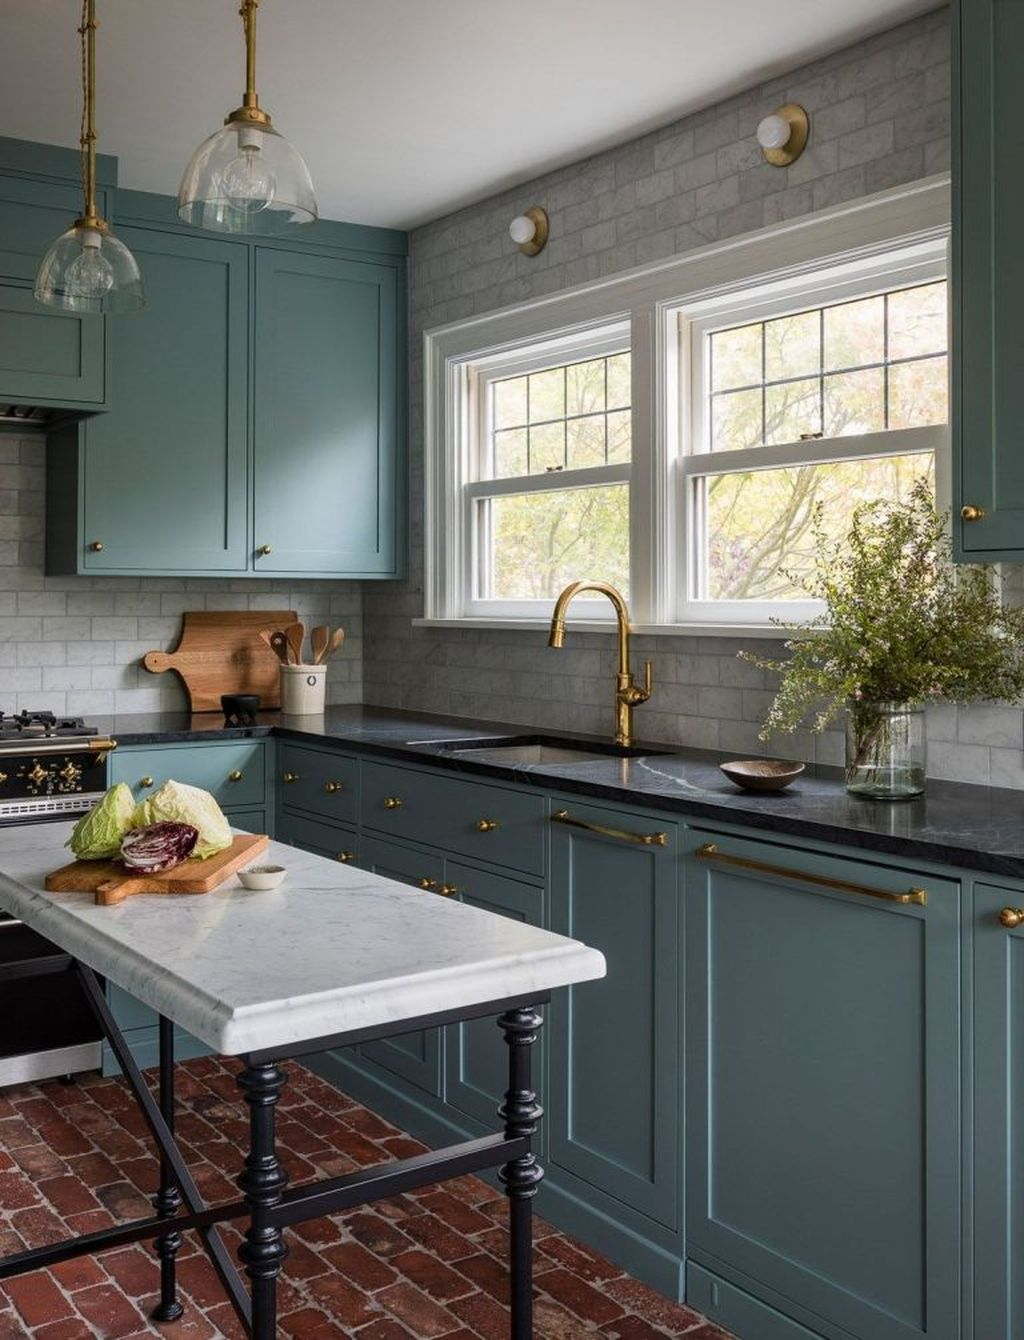 Fascinating Kitchen Design Ideas With Victorian Style 19